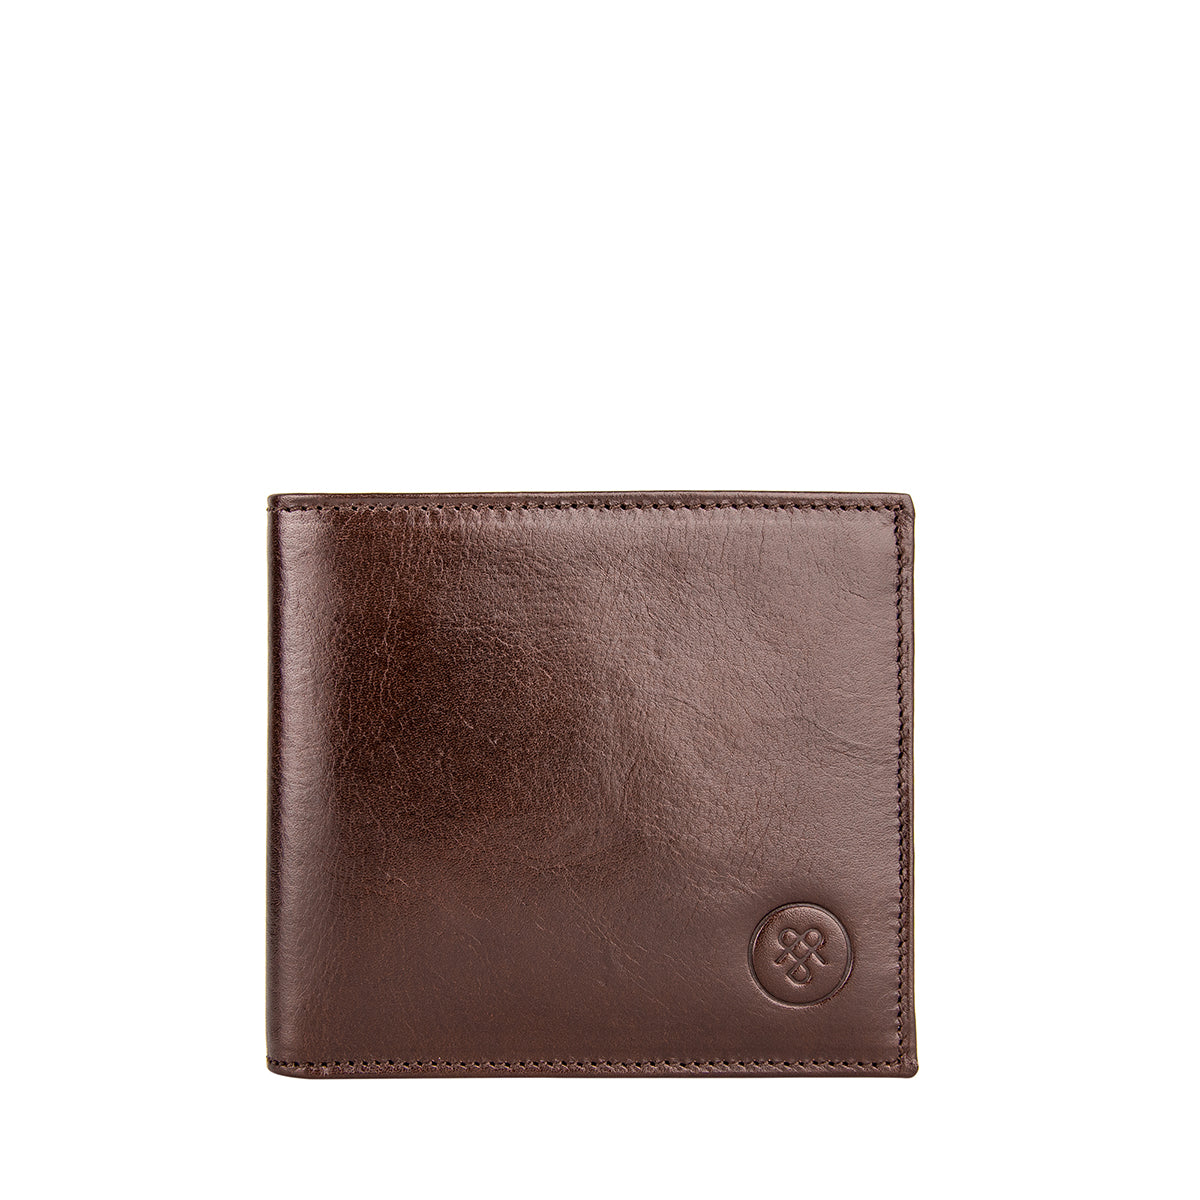 Image 1 of the 'Vittore' Dark Chocolate Veg-Tanned Leather Bi-Fold Wallet